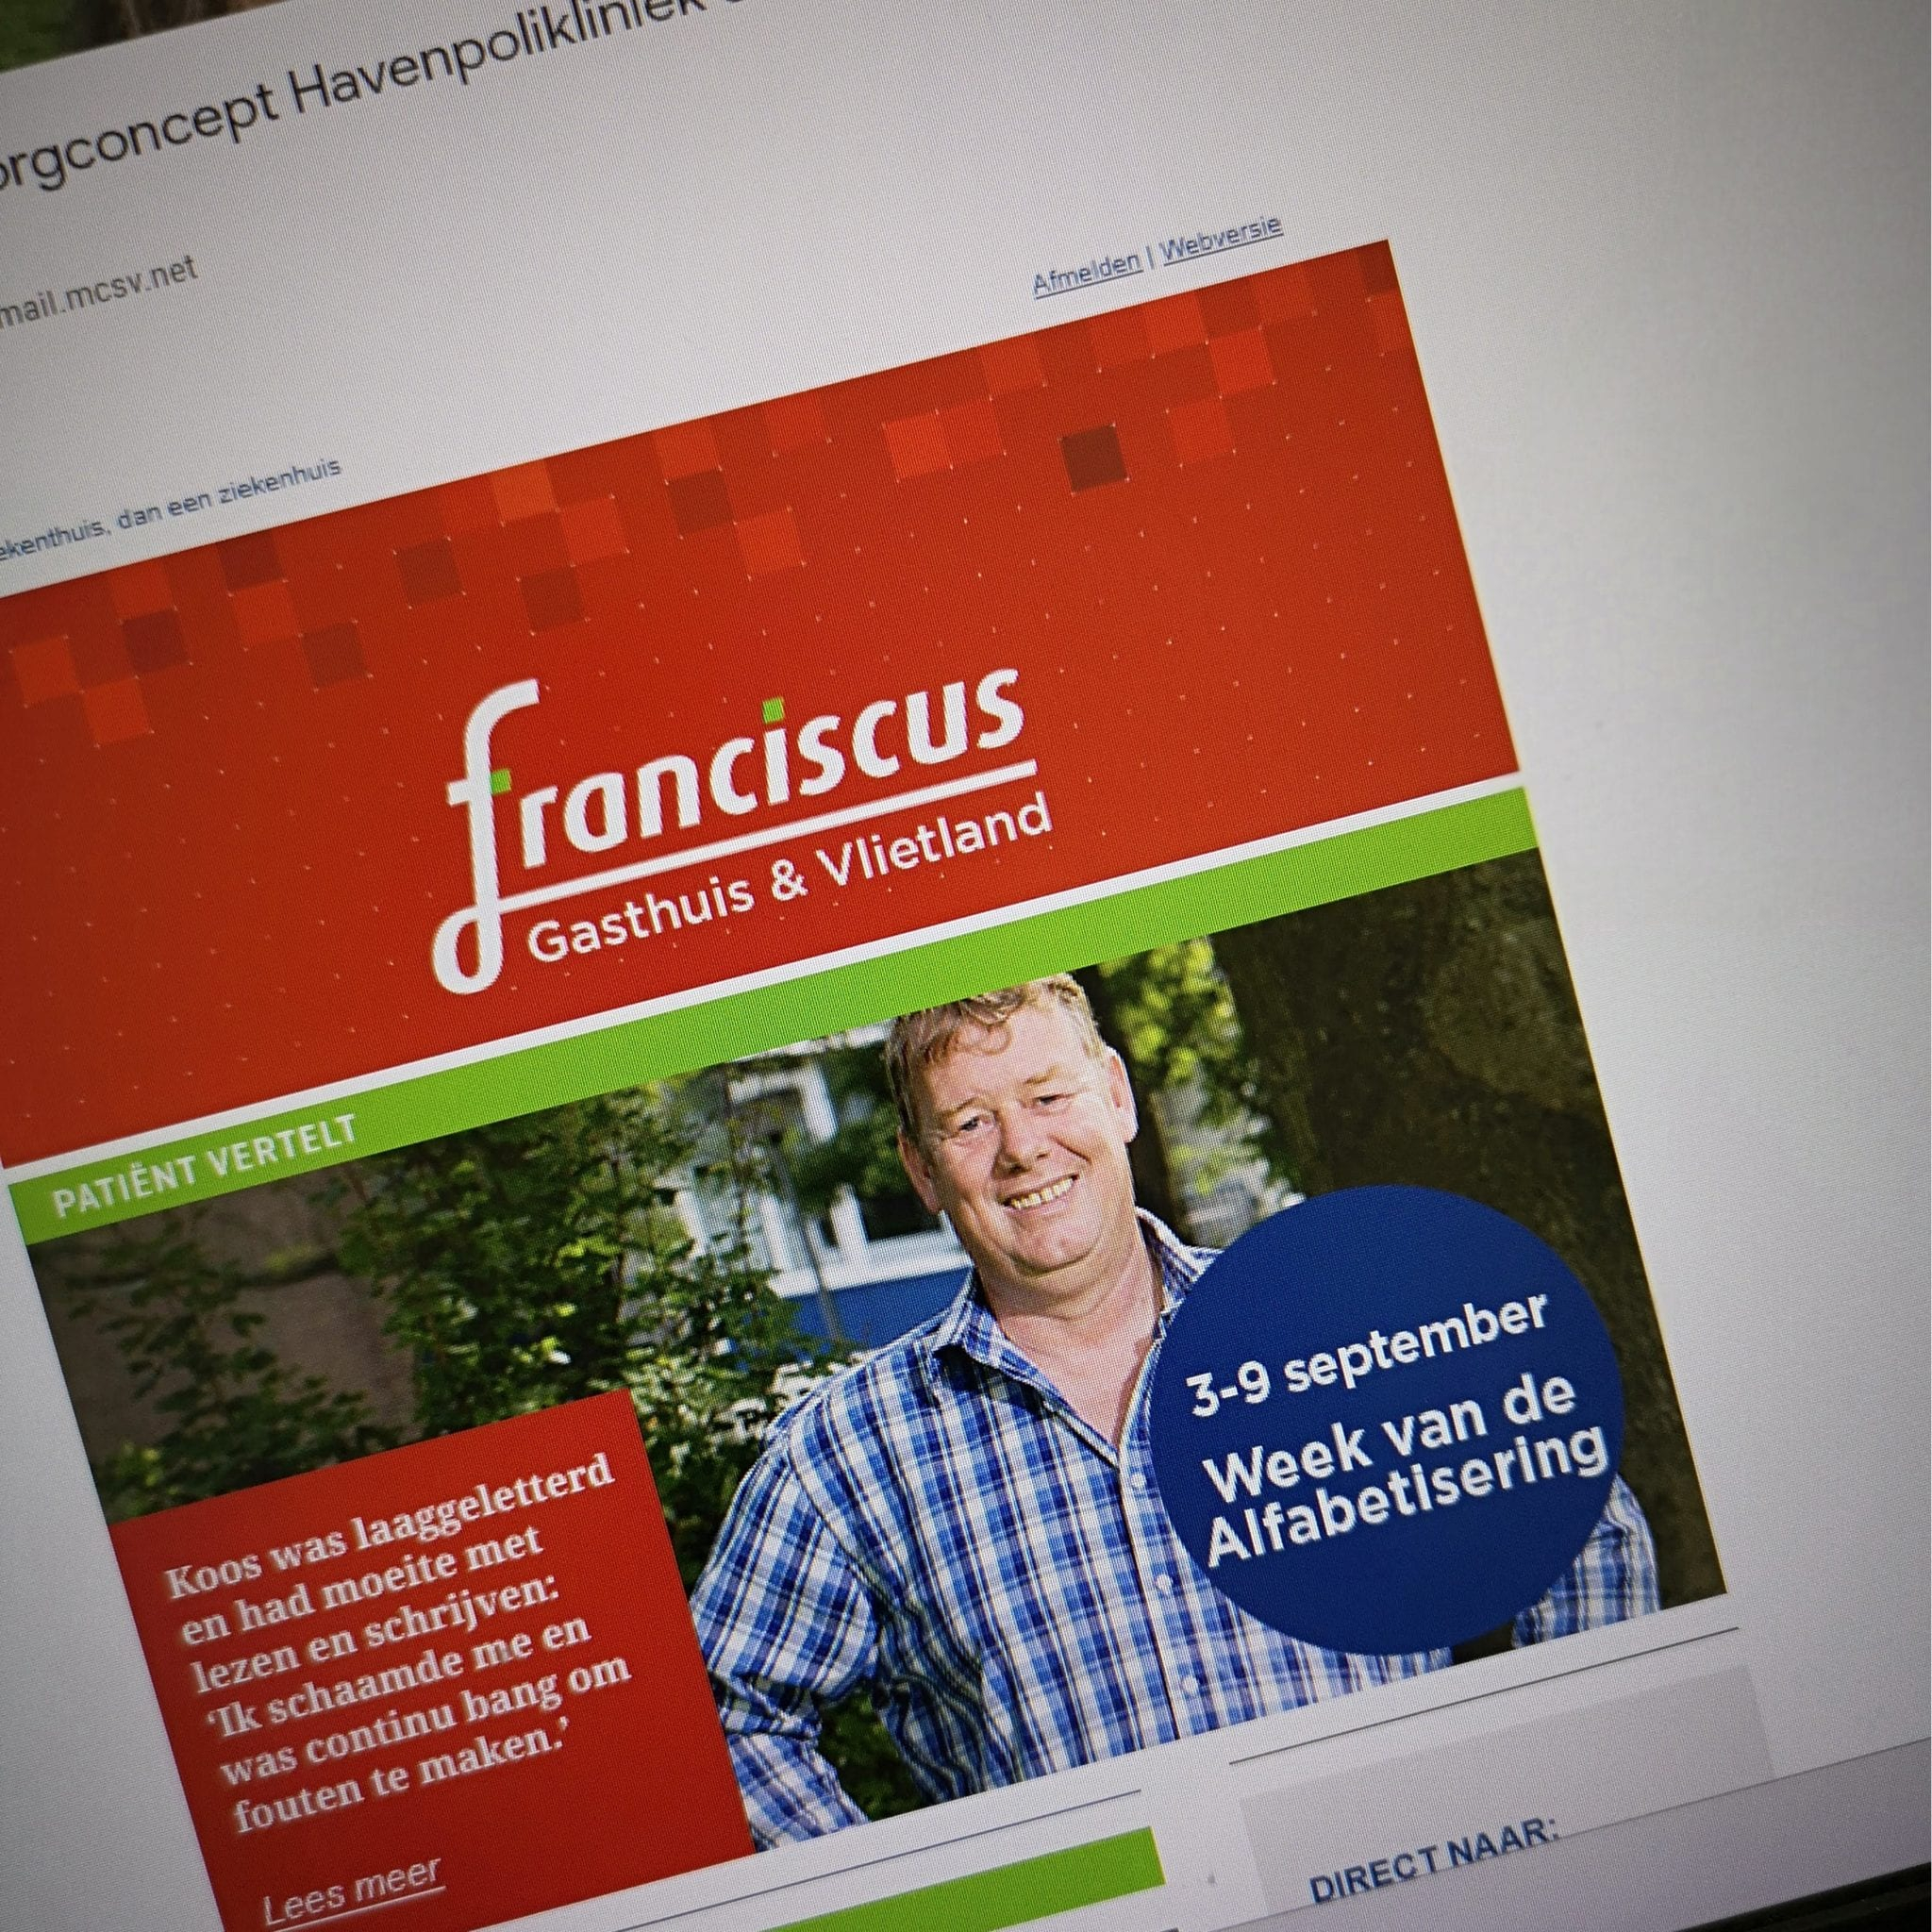 Zet jij e-mail al in als marketingkanaal?